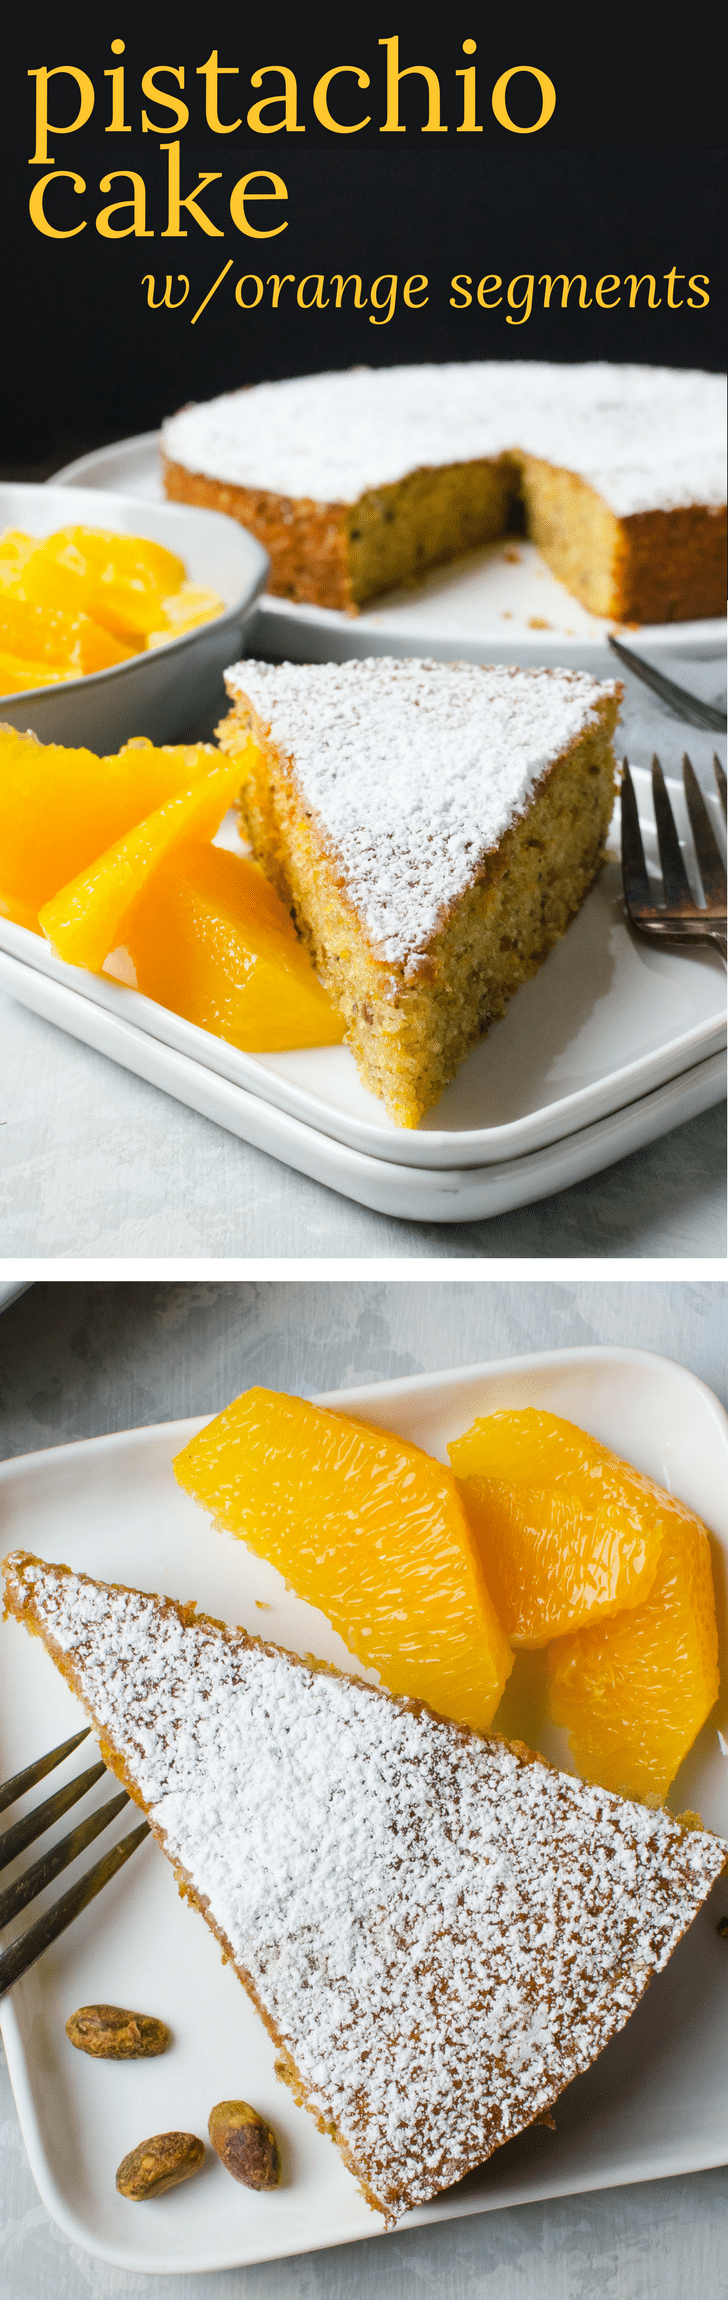 This easy single layer cake recipe is fragrant with a nutty crumb. Serve Pistachio Cake with Orange Segments to highlight the citrus in the cake. A perfect dessert for company. #pistachiocake #pistachiocakerecipe #orangecake #orangesegments #easylayercake #singlelayercake #orange #pistachios #dessertrecipes #dessertforcompany #companydessert #simplecakes